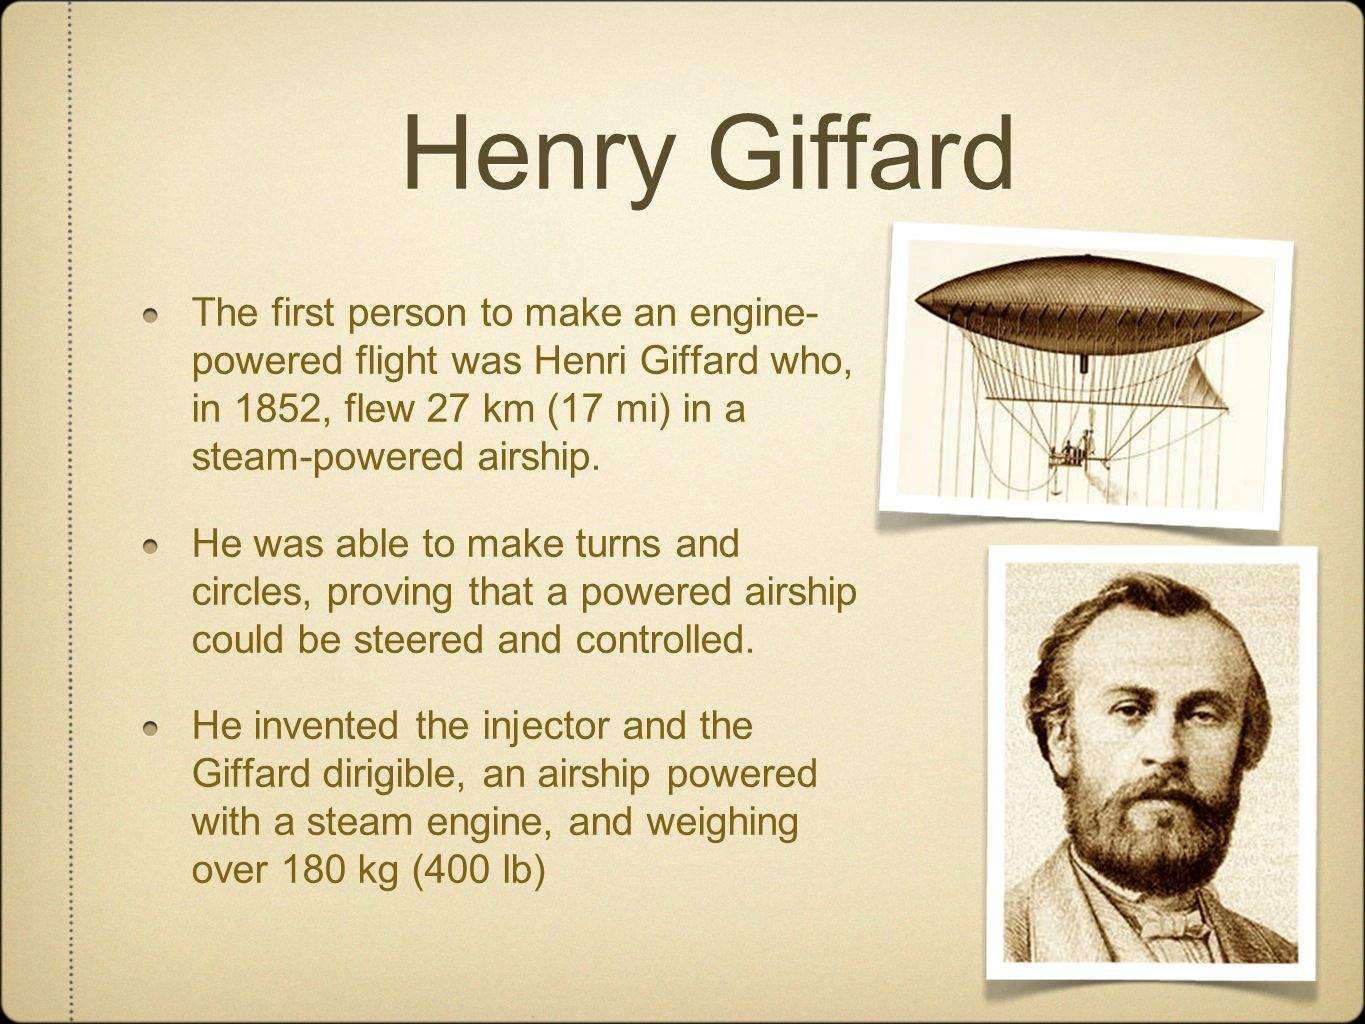 Henry Giffard The first person to make an engine- powered flight was Henri Giffard who, in 1852, flew 27 km (17 mi) in a steam-powered airship. He was